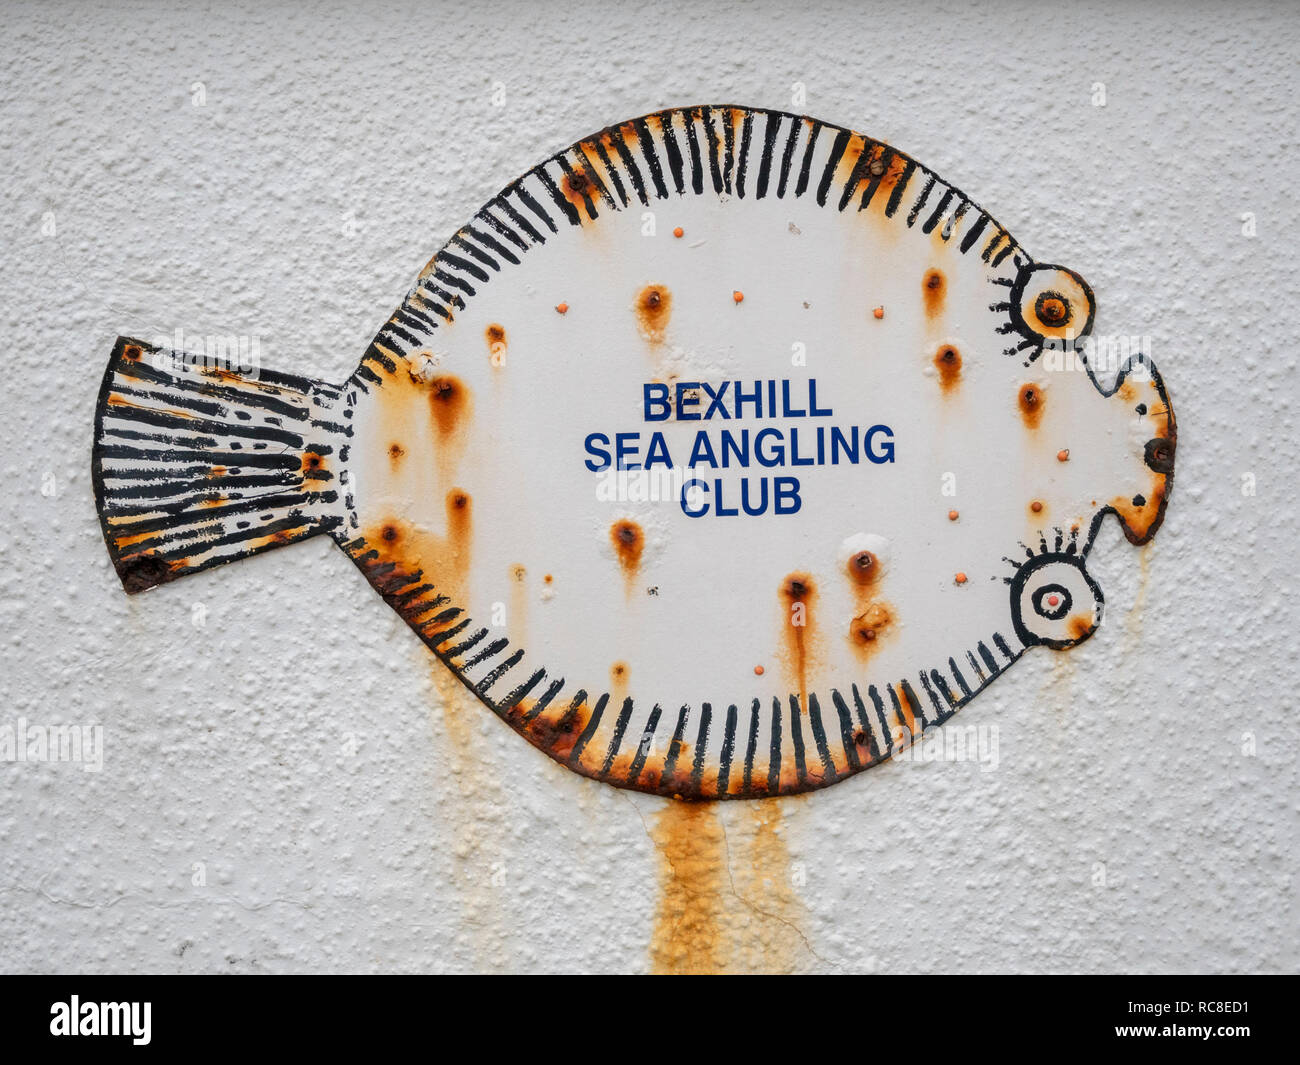 Un signe en forme de poisson sur un mur à Bexhill Bexhill Club de pêche à la East Sussex UK Photo Stock